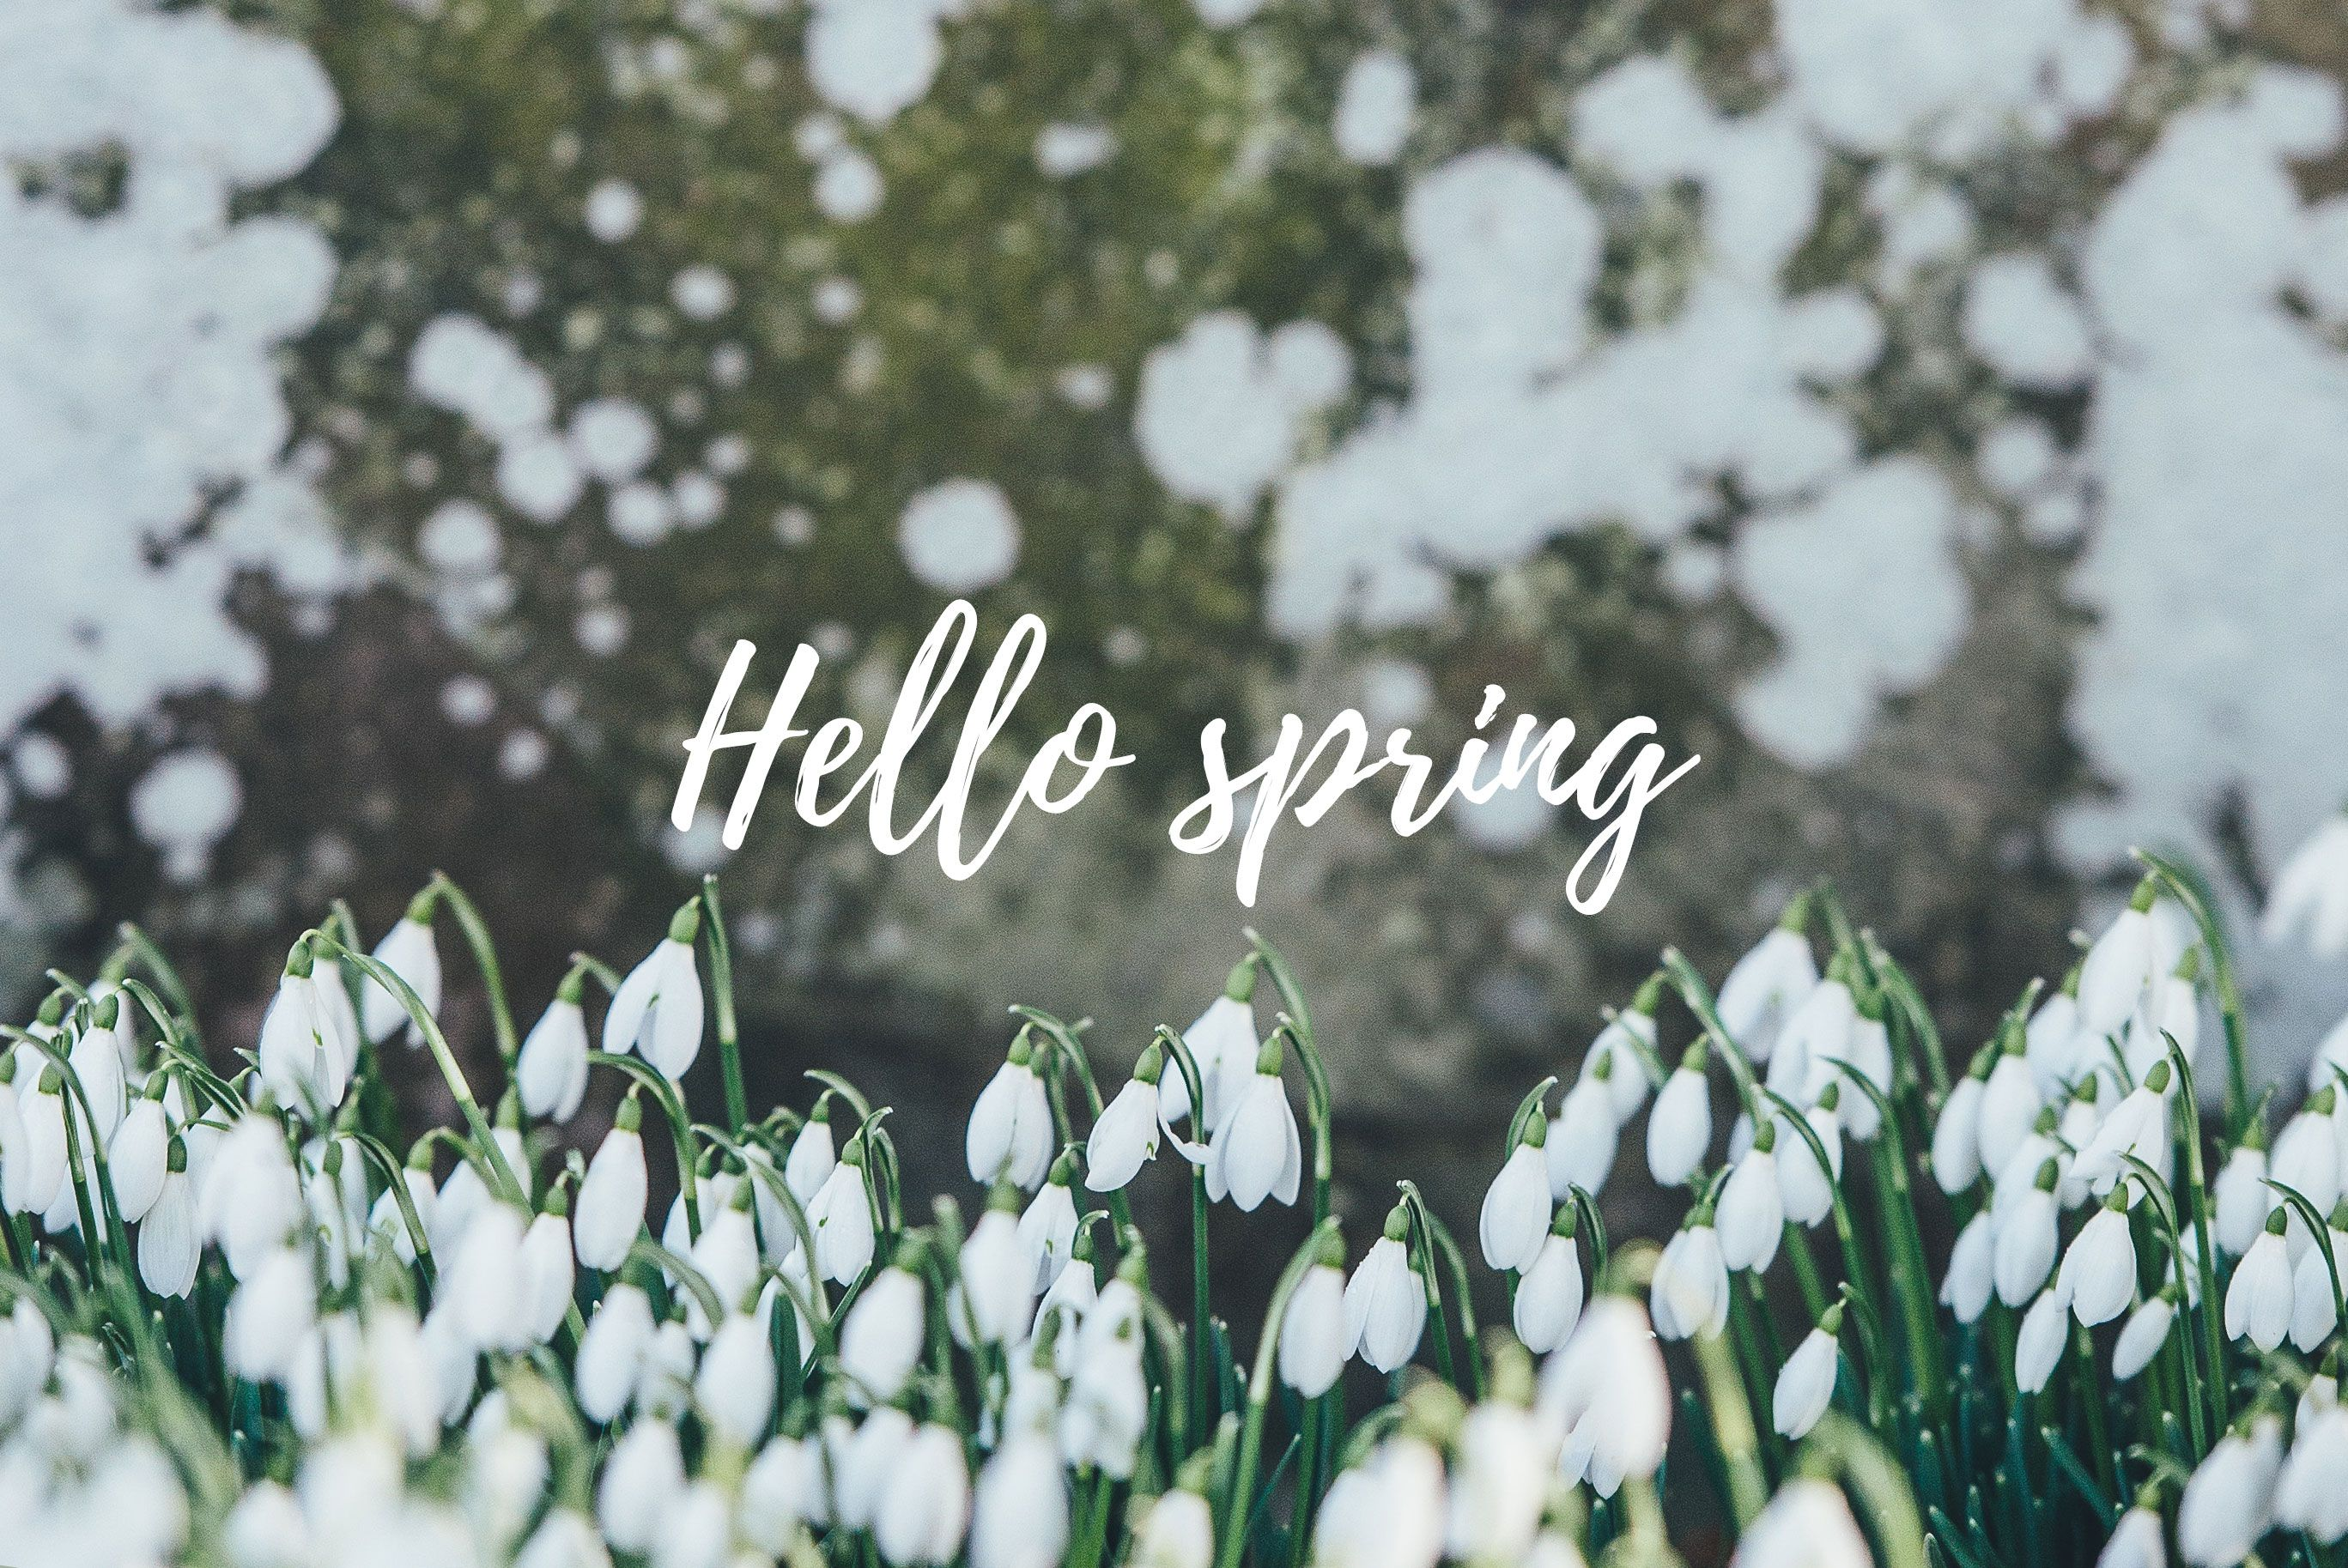 Aesthetic Spring Computer Backgrounds , HD Wallpaper & Backgrounds